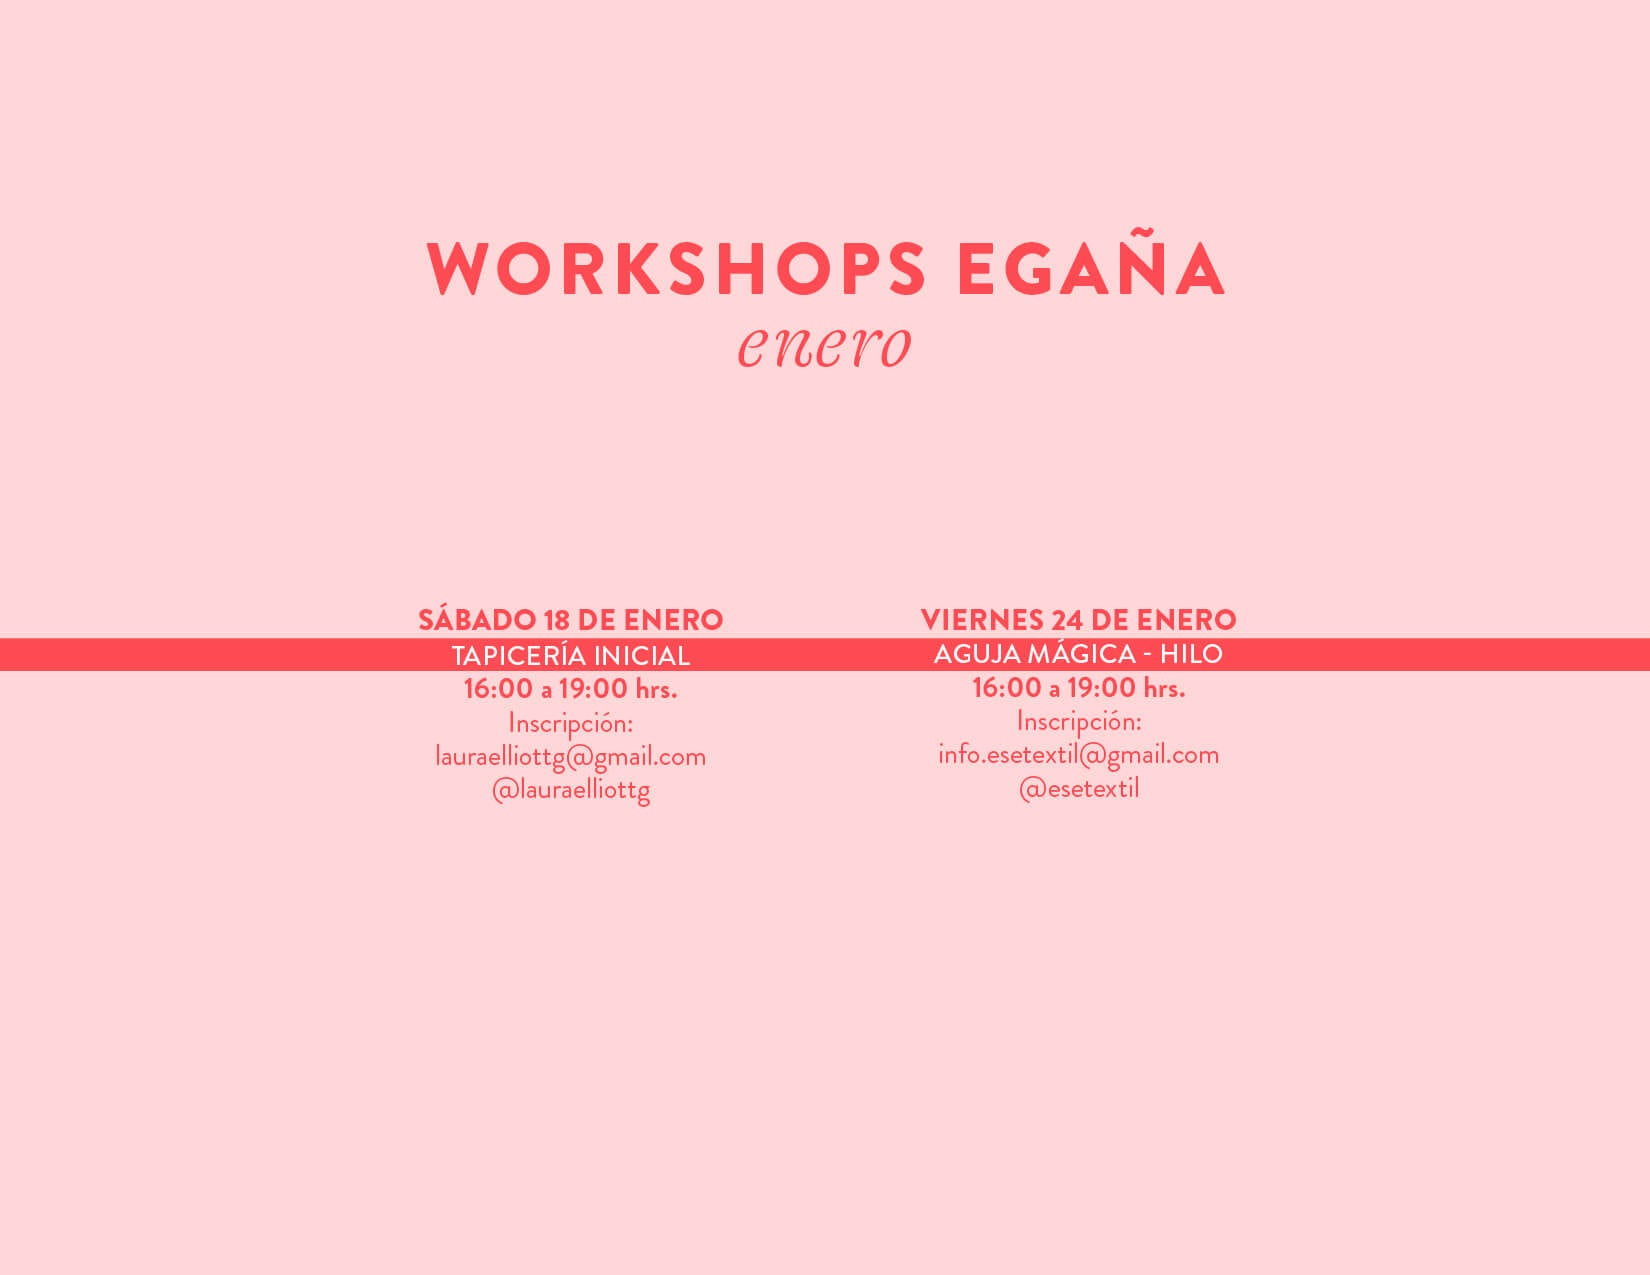 workshops plaza Egaña